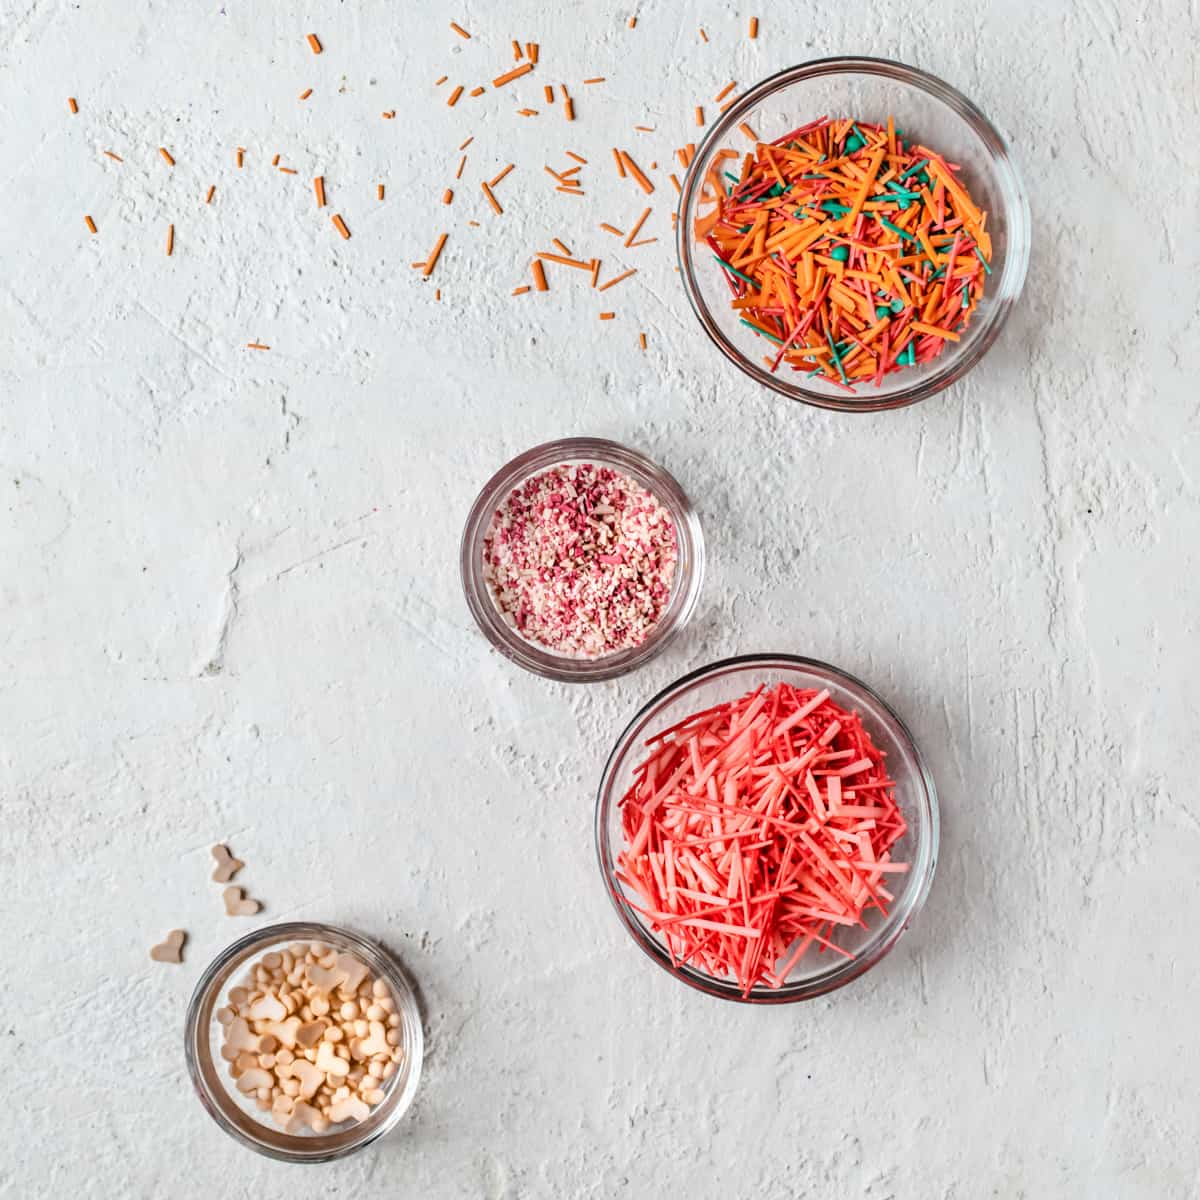 Several glass bowls filled with different shaped, sized and colored sprinkles on white background.